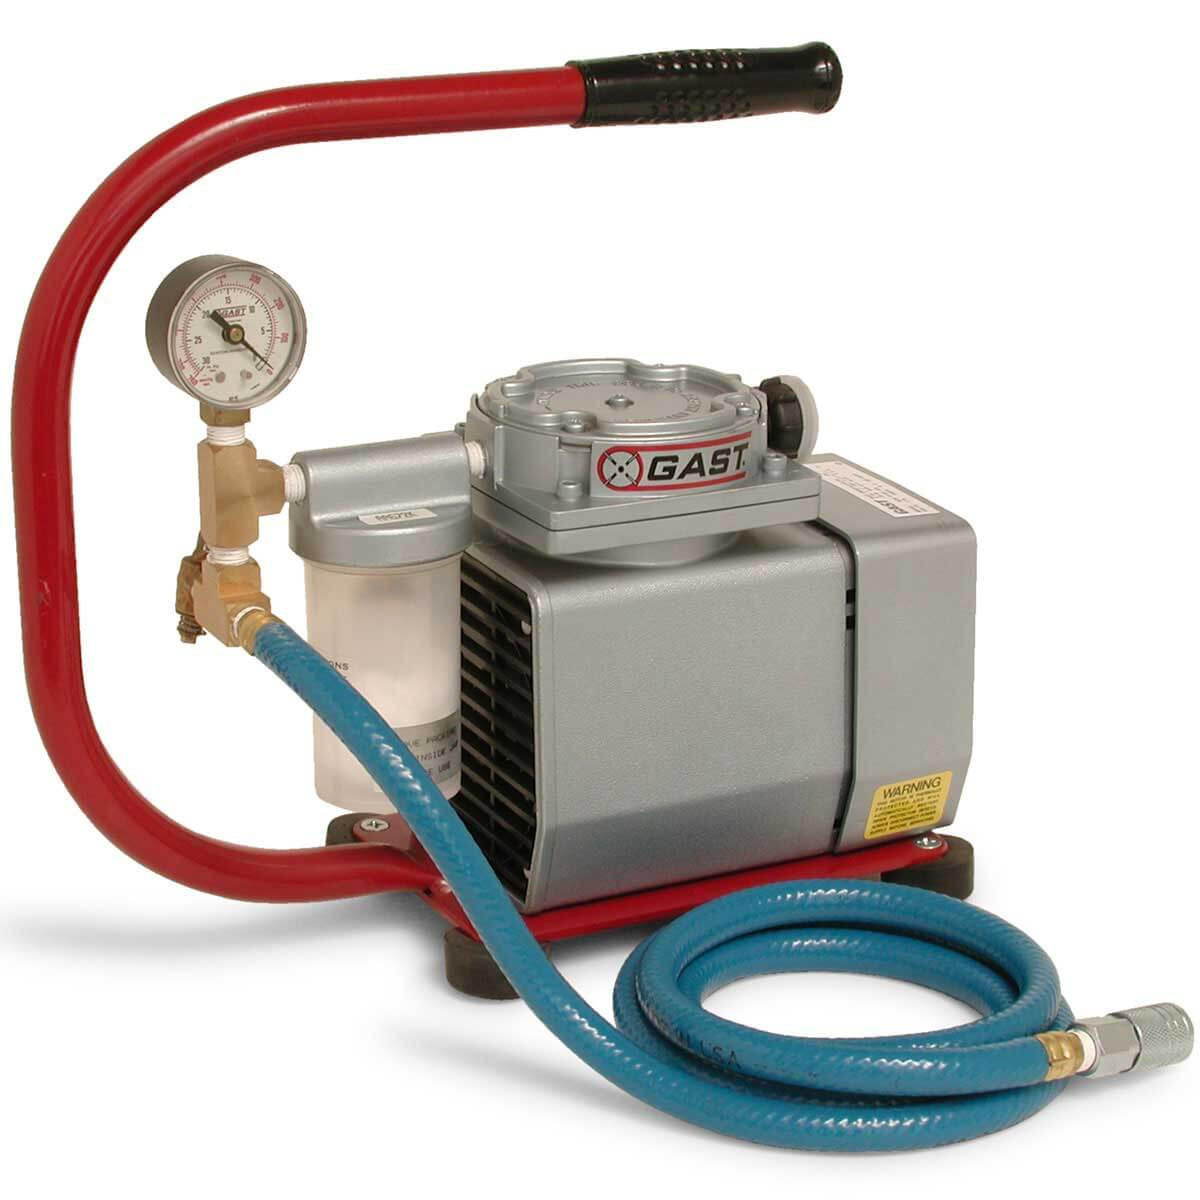 Gast Vacuum Pumps for combo stands